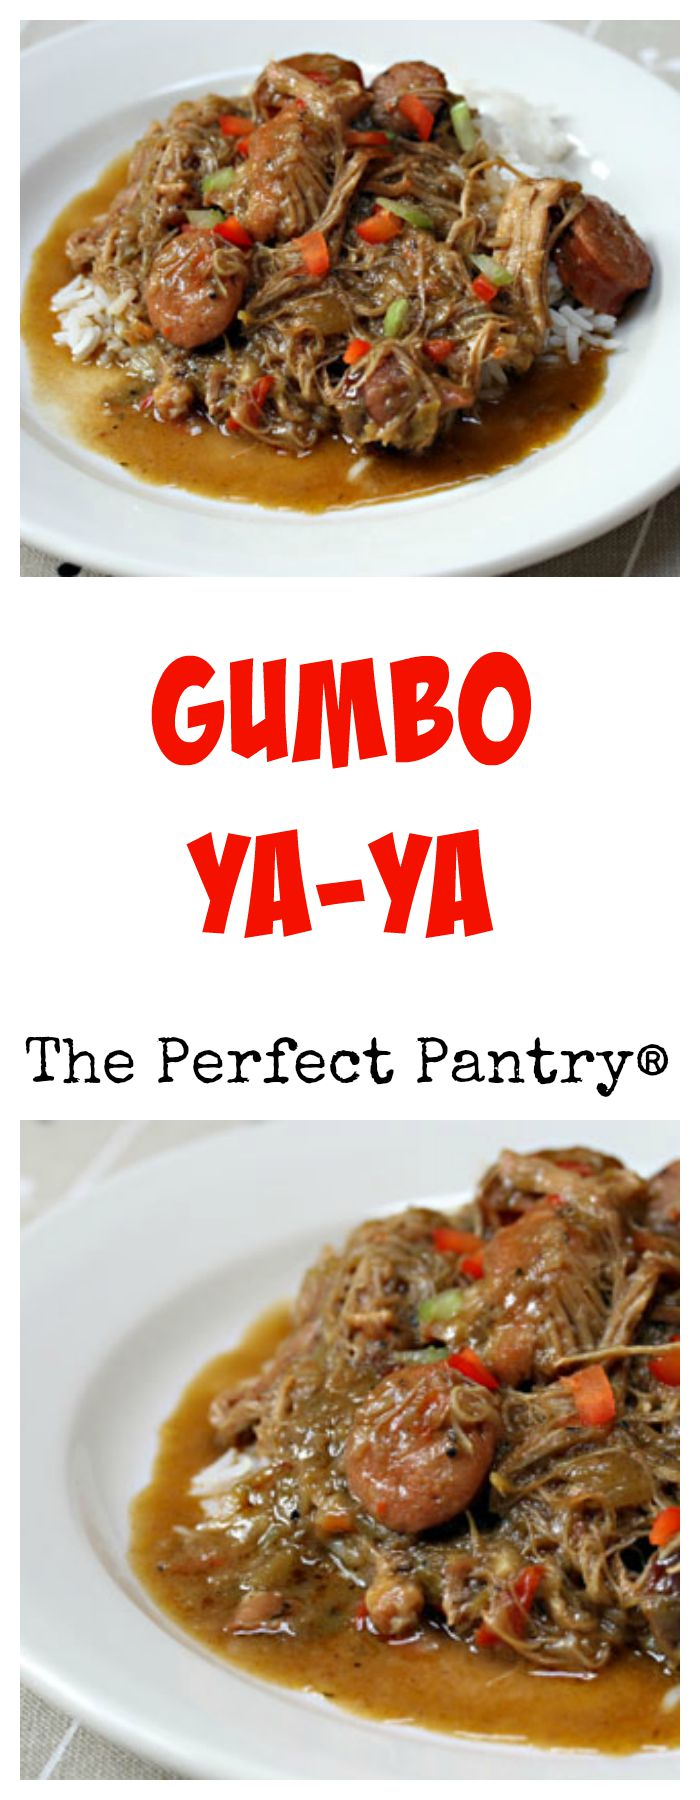 Gumbo Ya-Ya, from The Perfect Pantry.